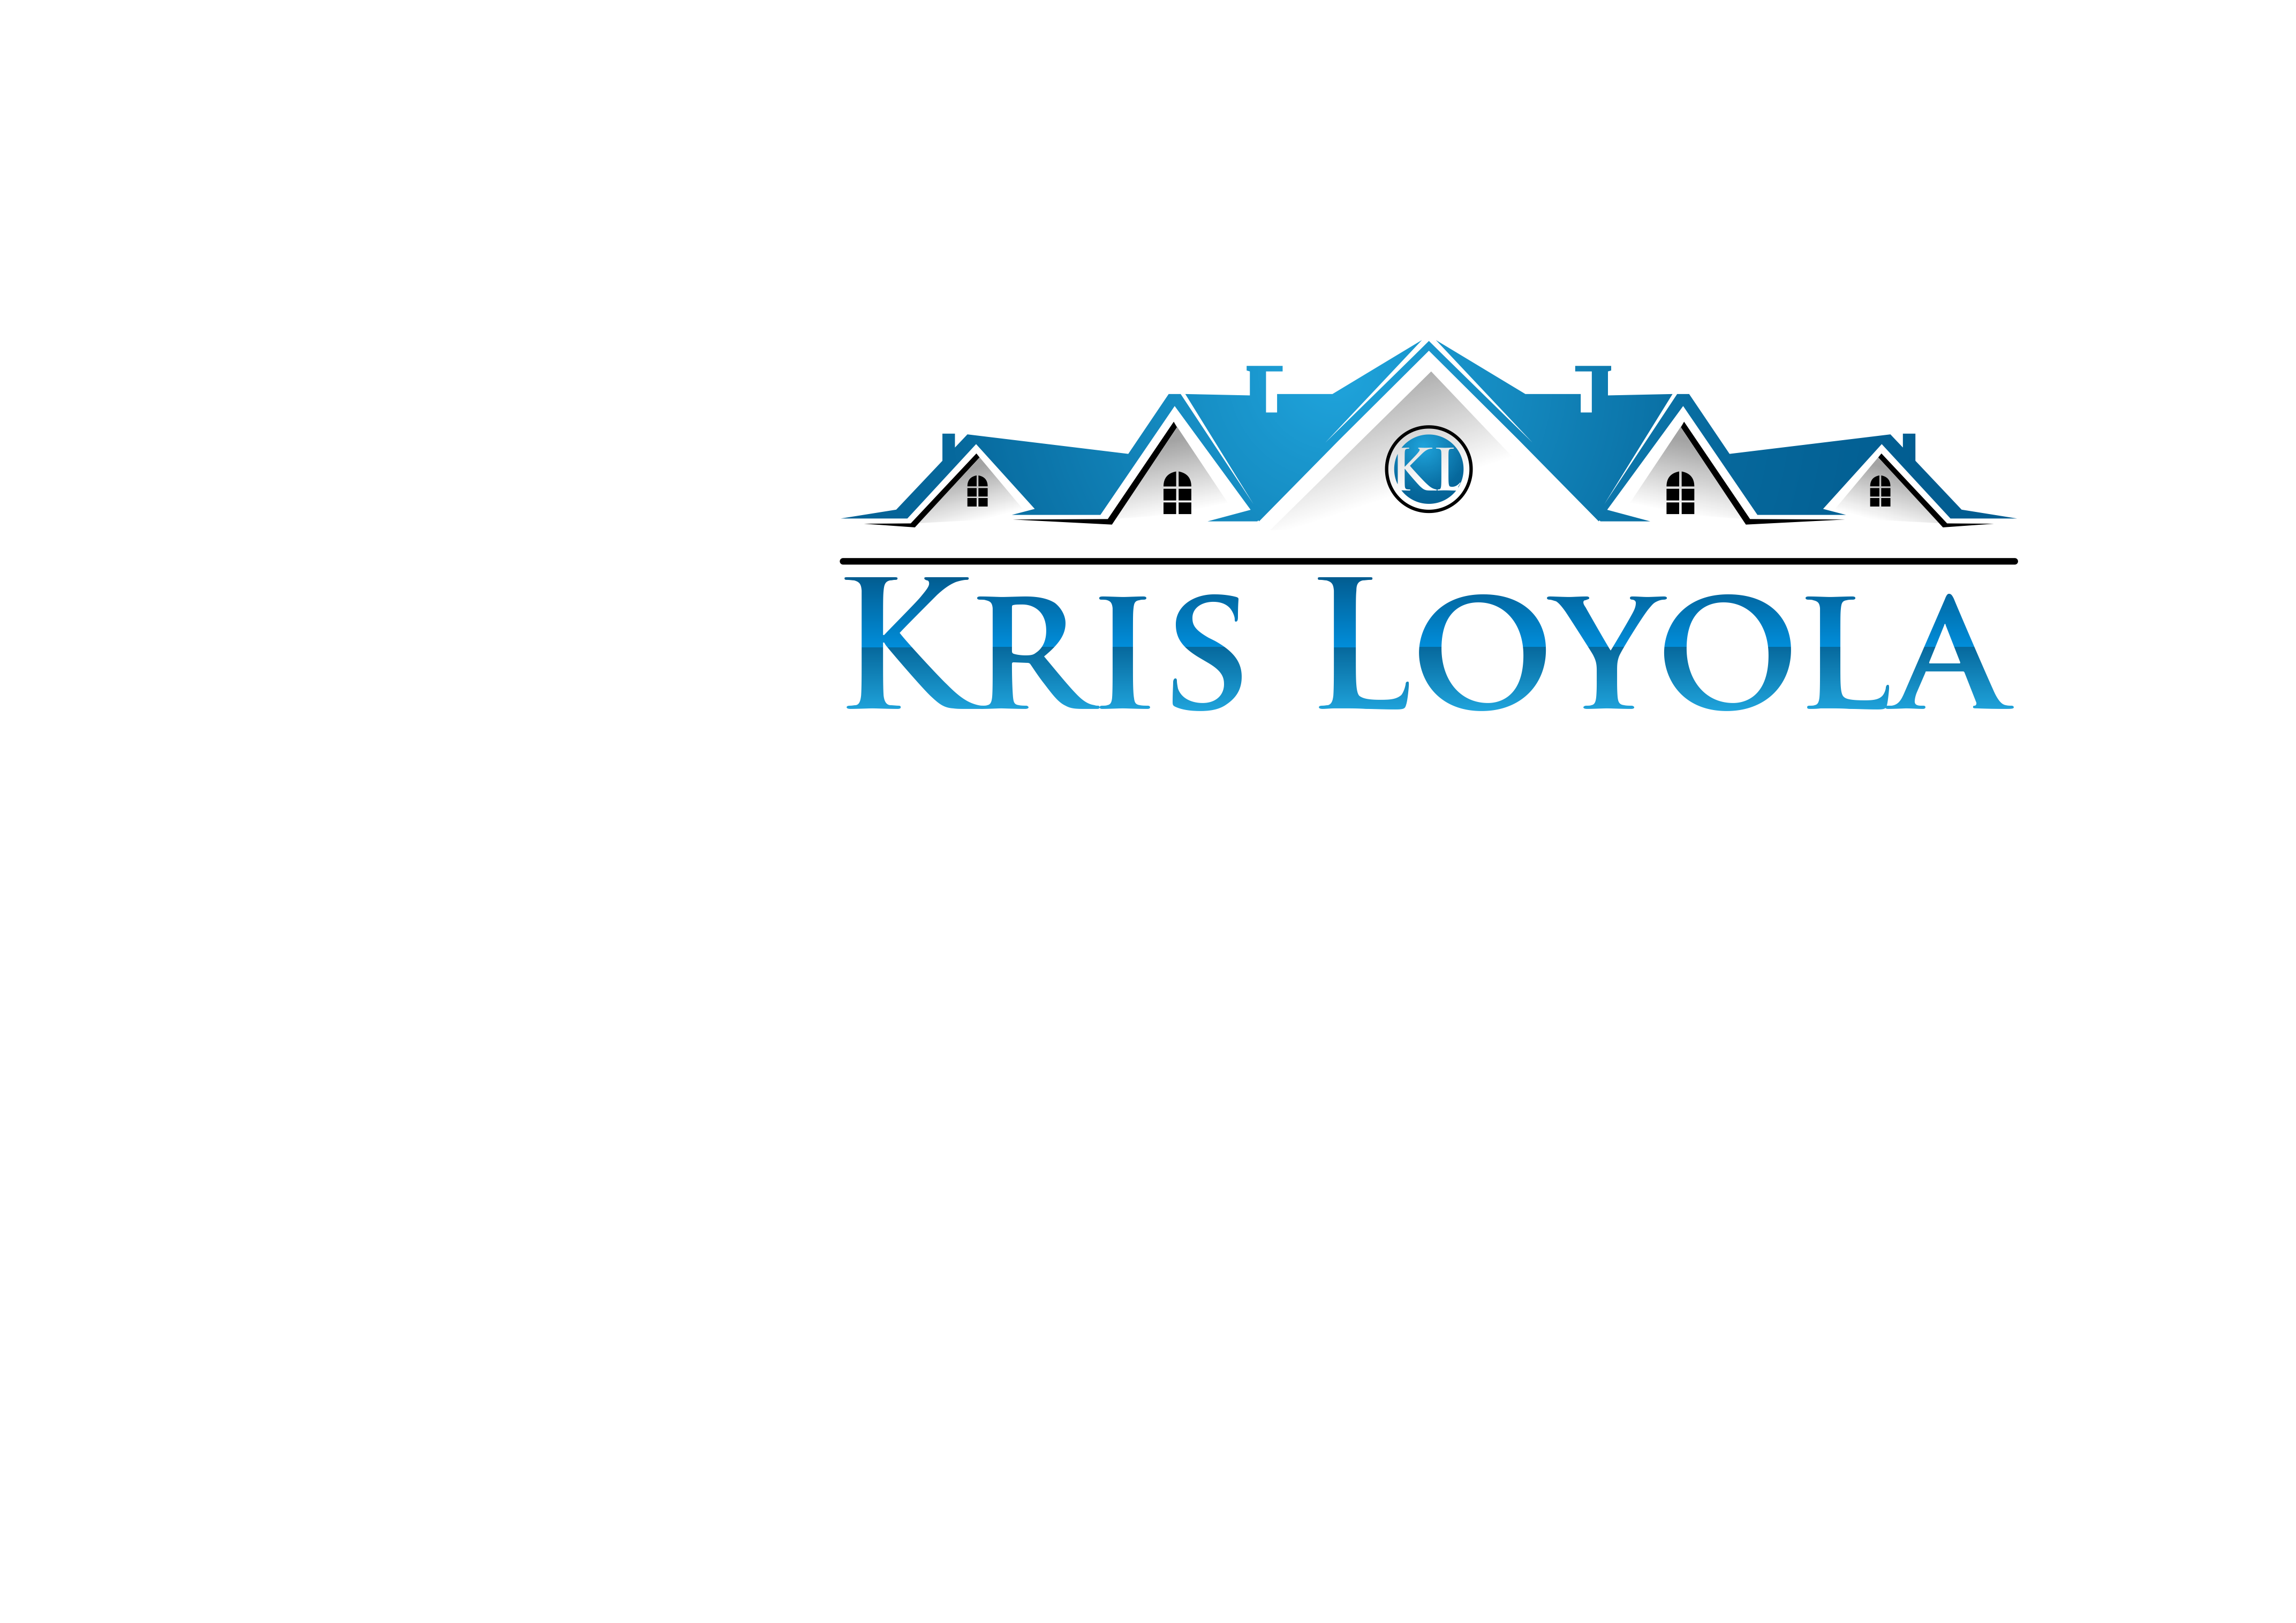 Logo Design by Muhammad Aslam - Entry No. 77 in the Logo Design Contest Kris Loyola Logo Design.